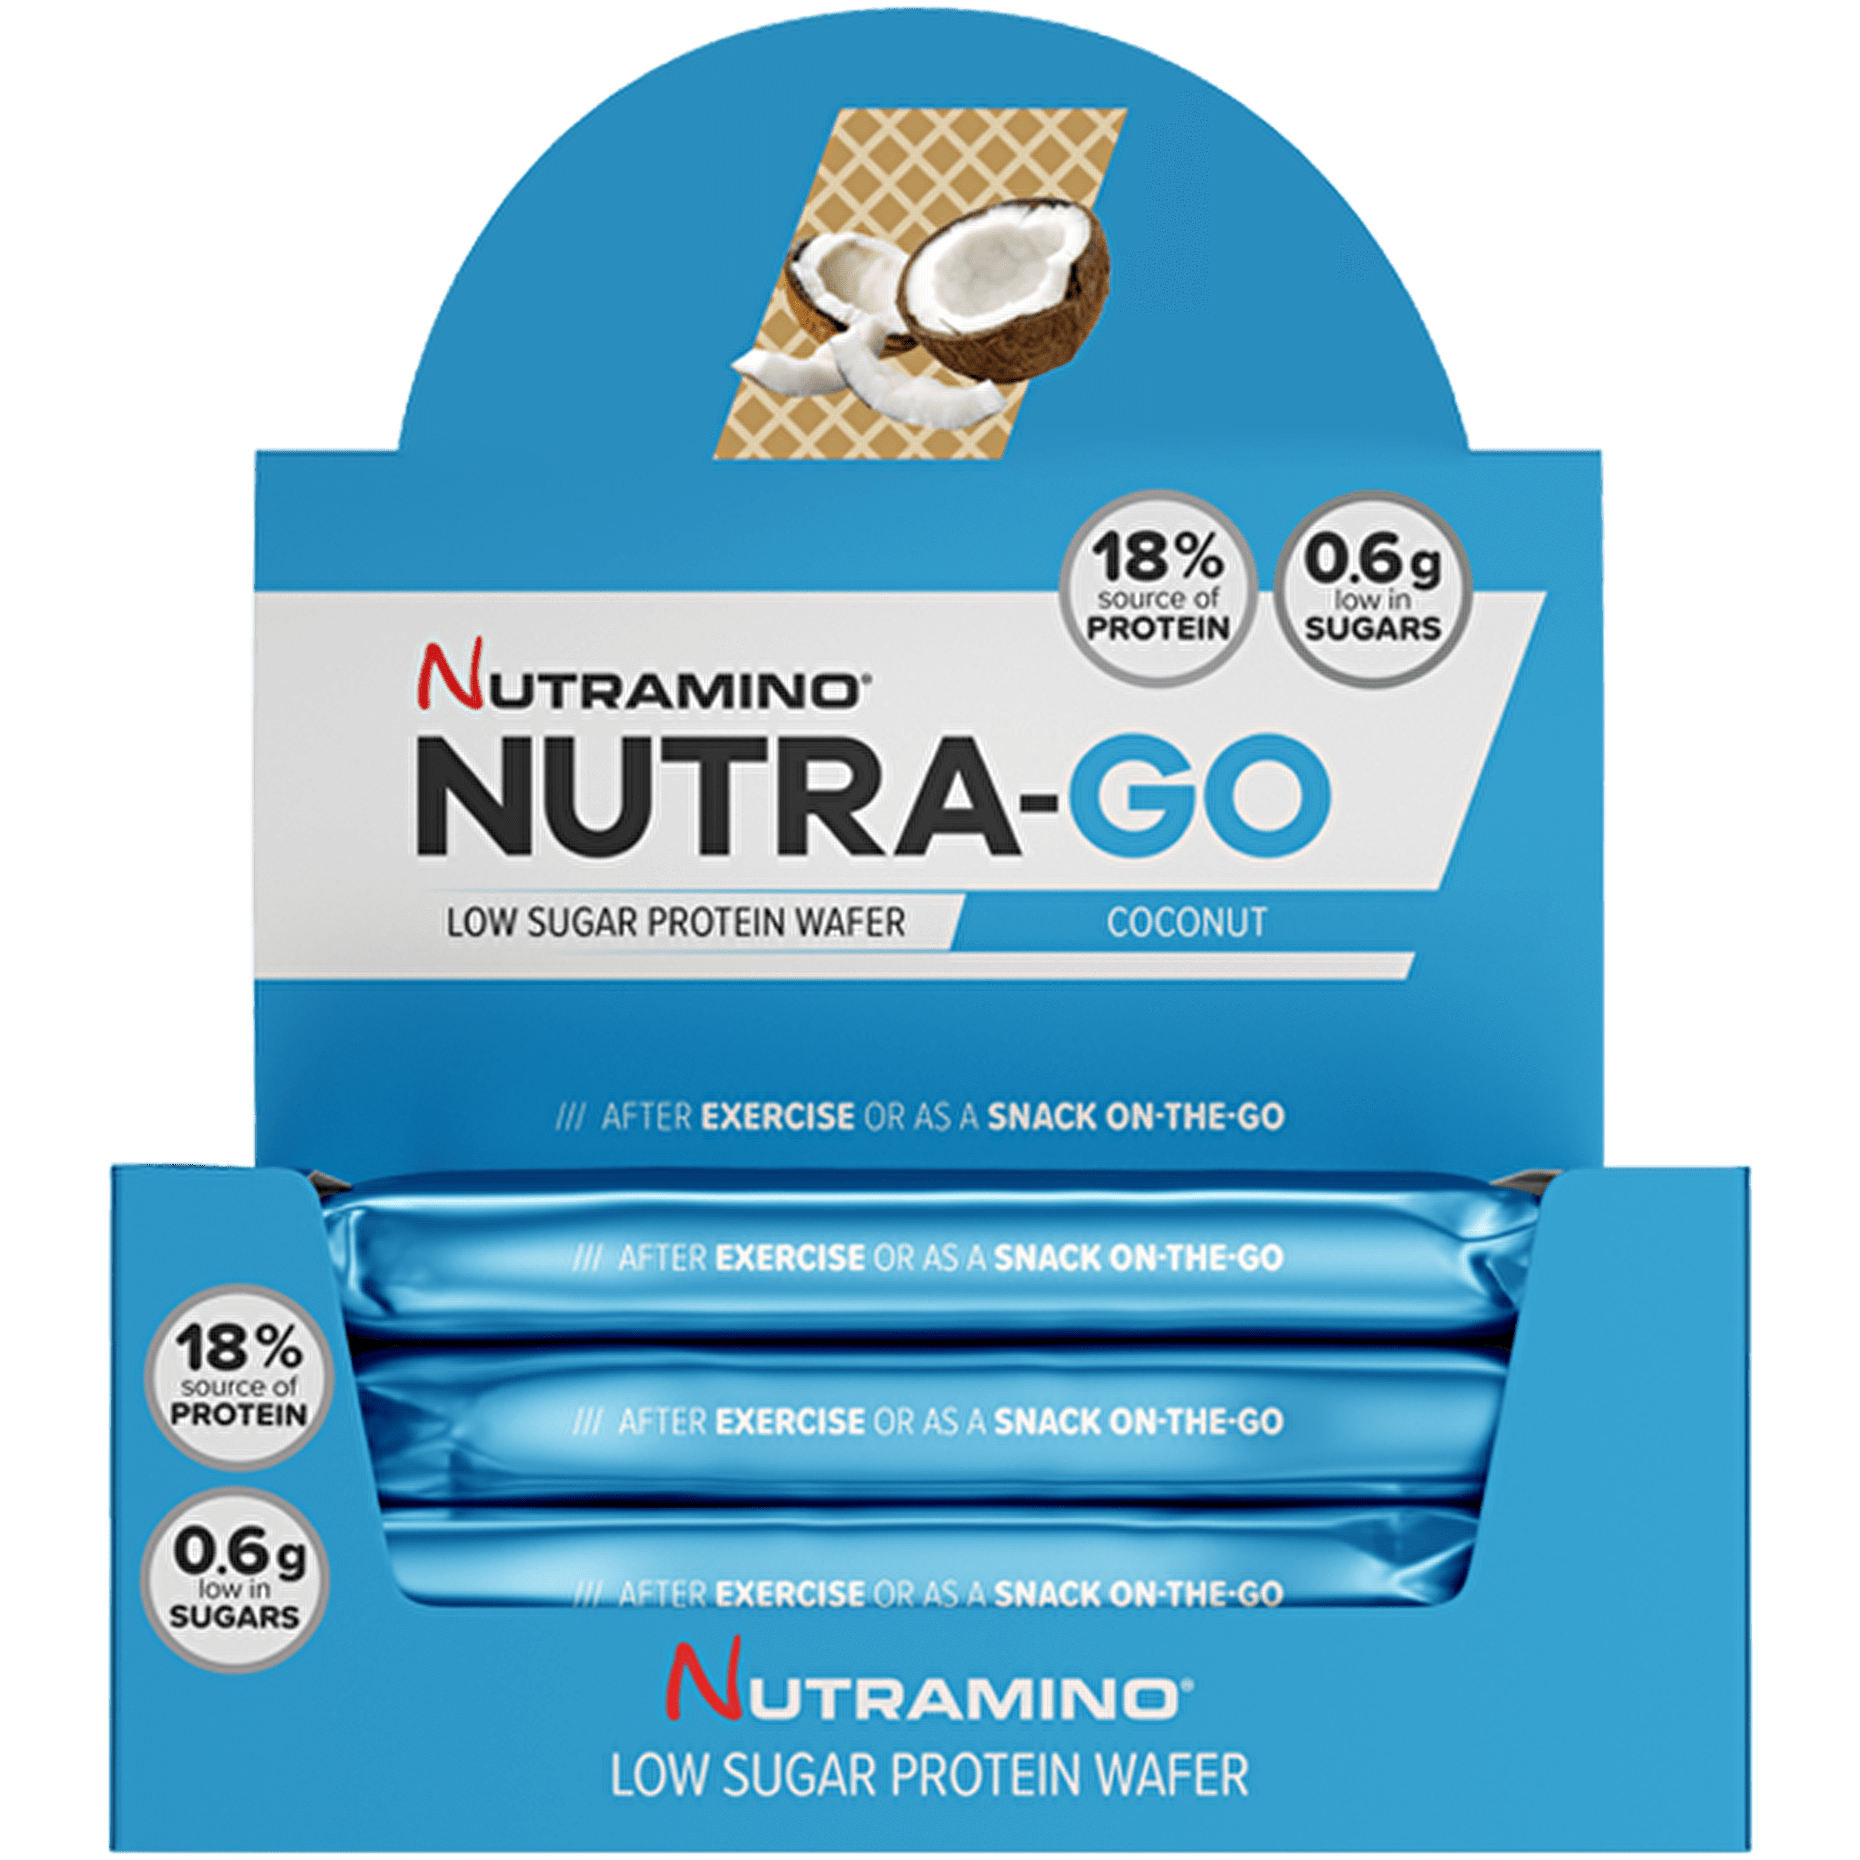 nutramino-protein-bars-box-of-12-coconut-nutramino-nutra-go-protein-wafers-posted-protein-656377053200_2000x